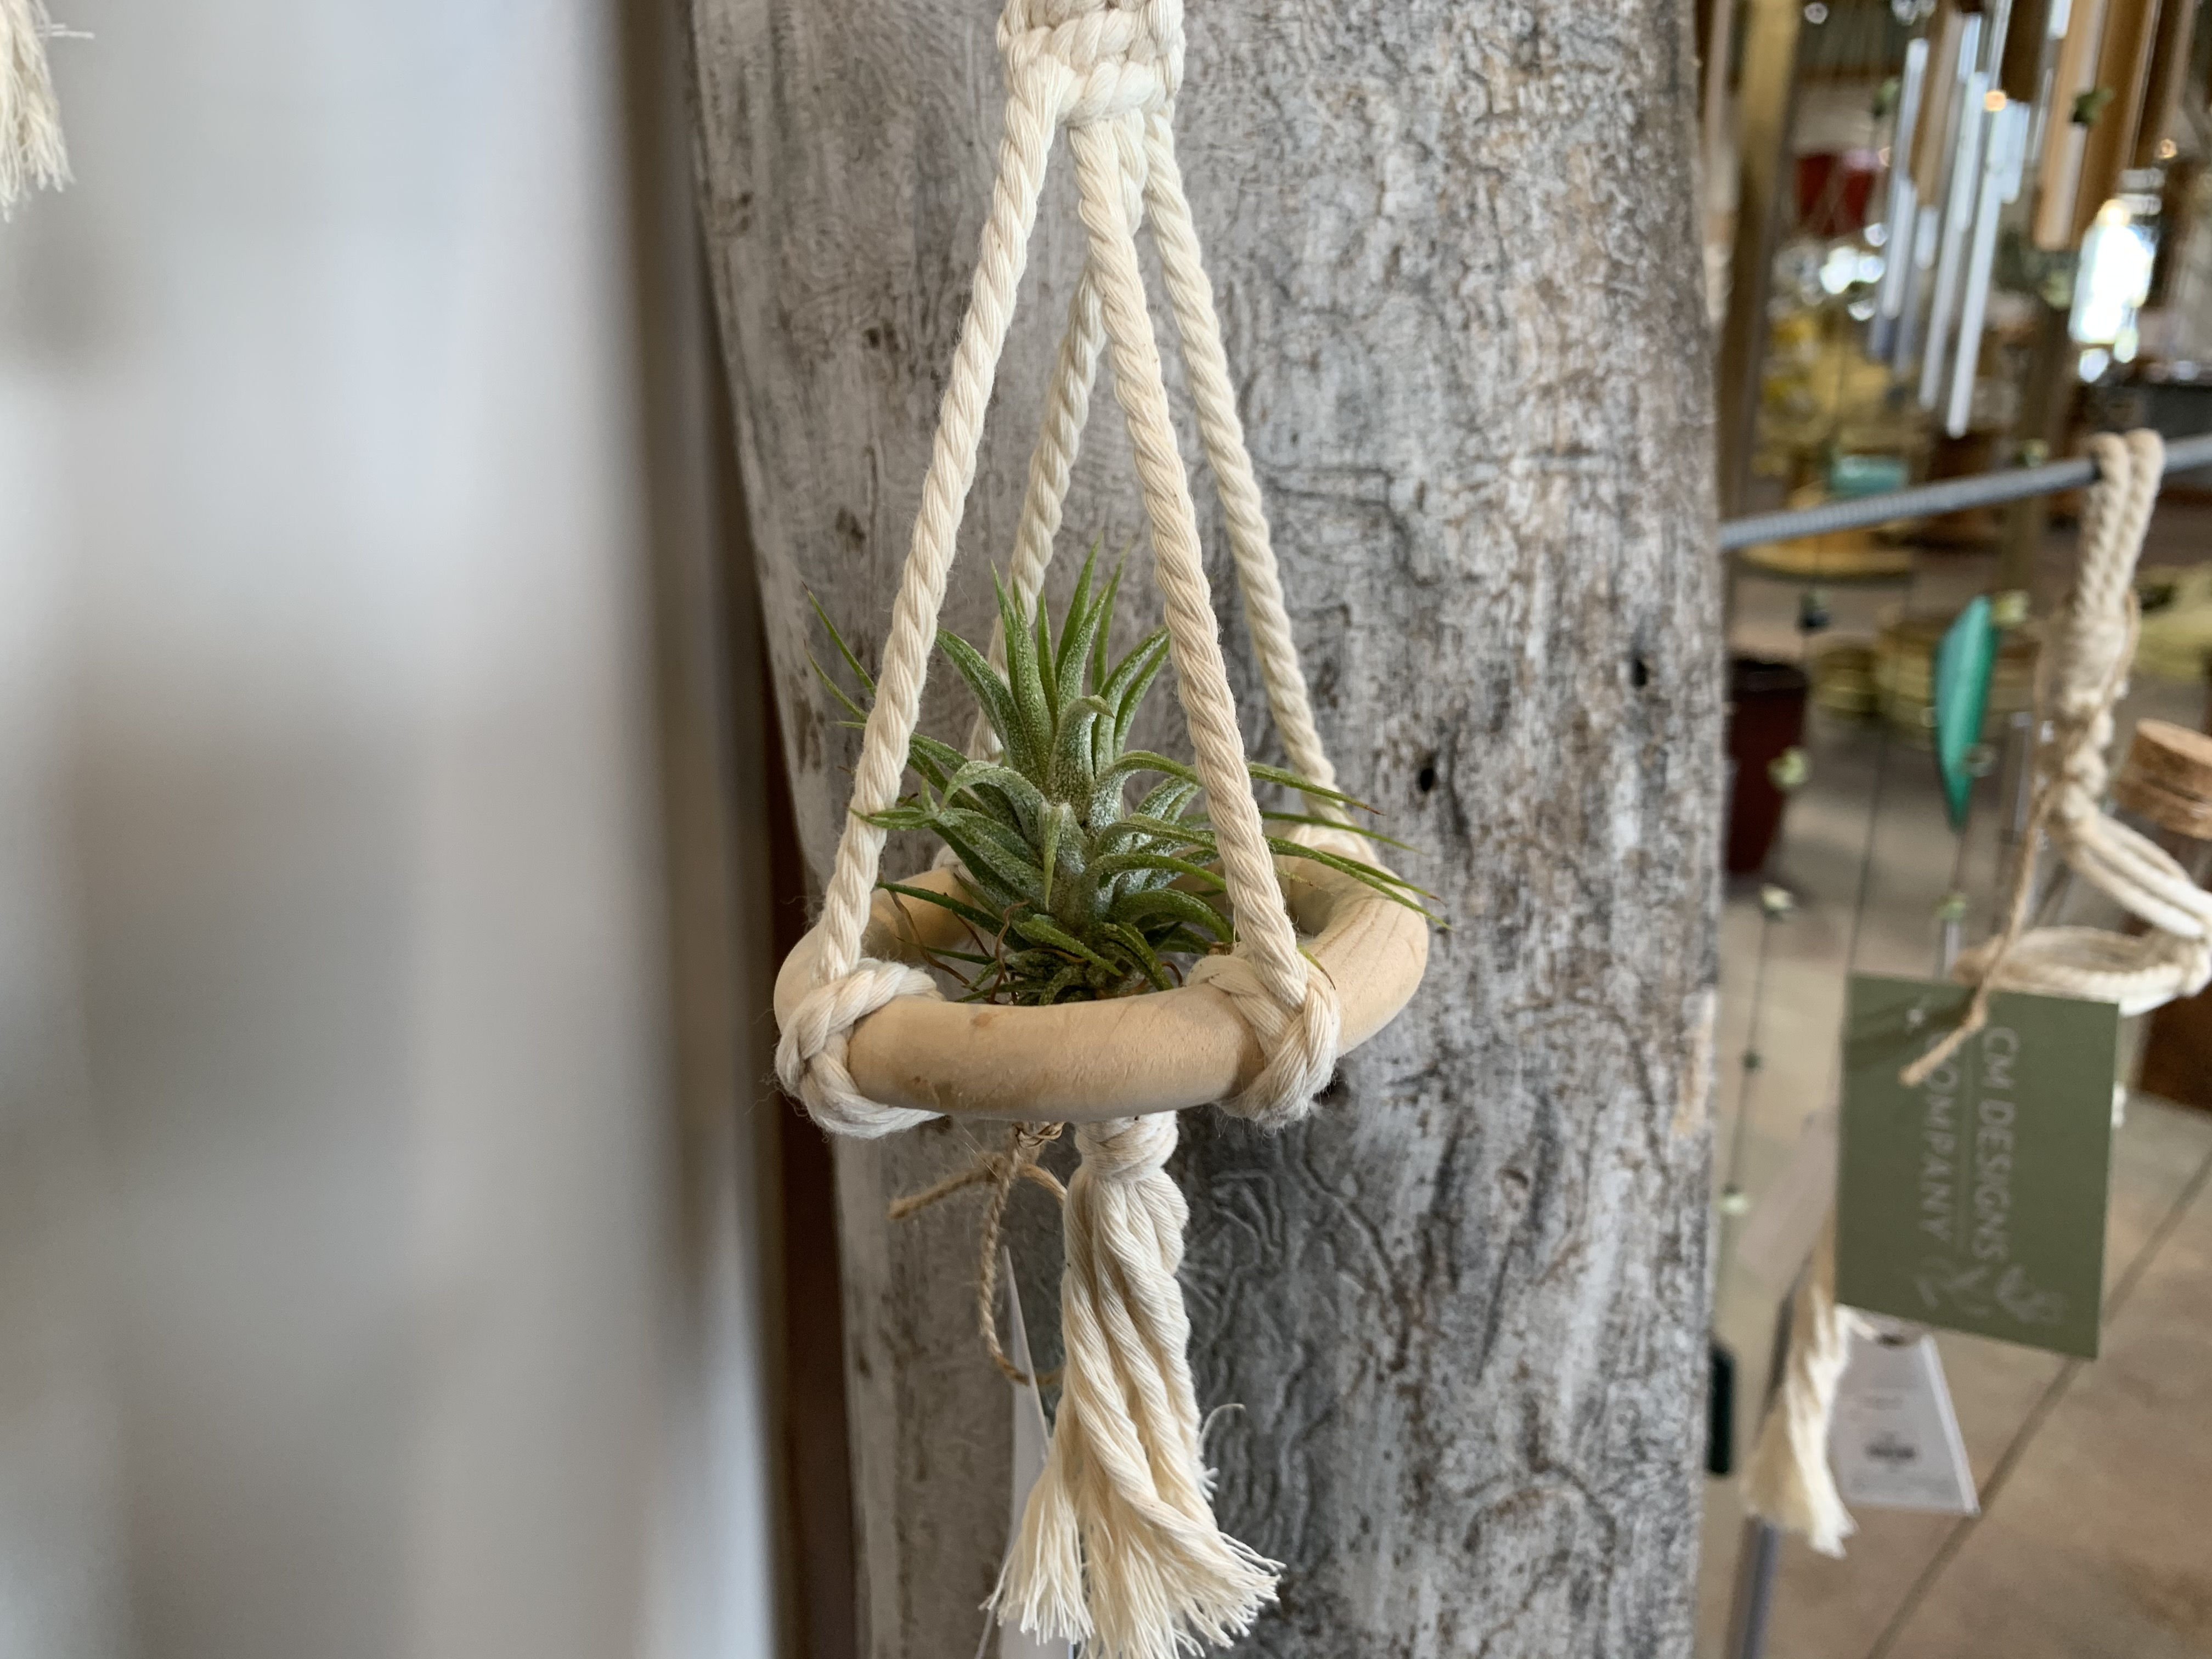 Air plants with hangers.